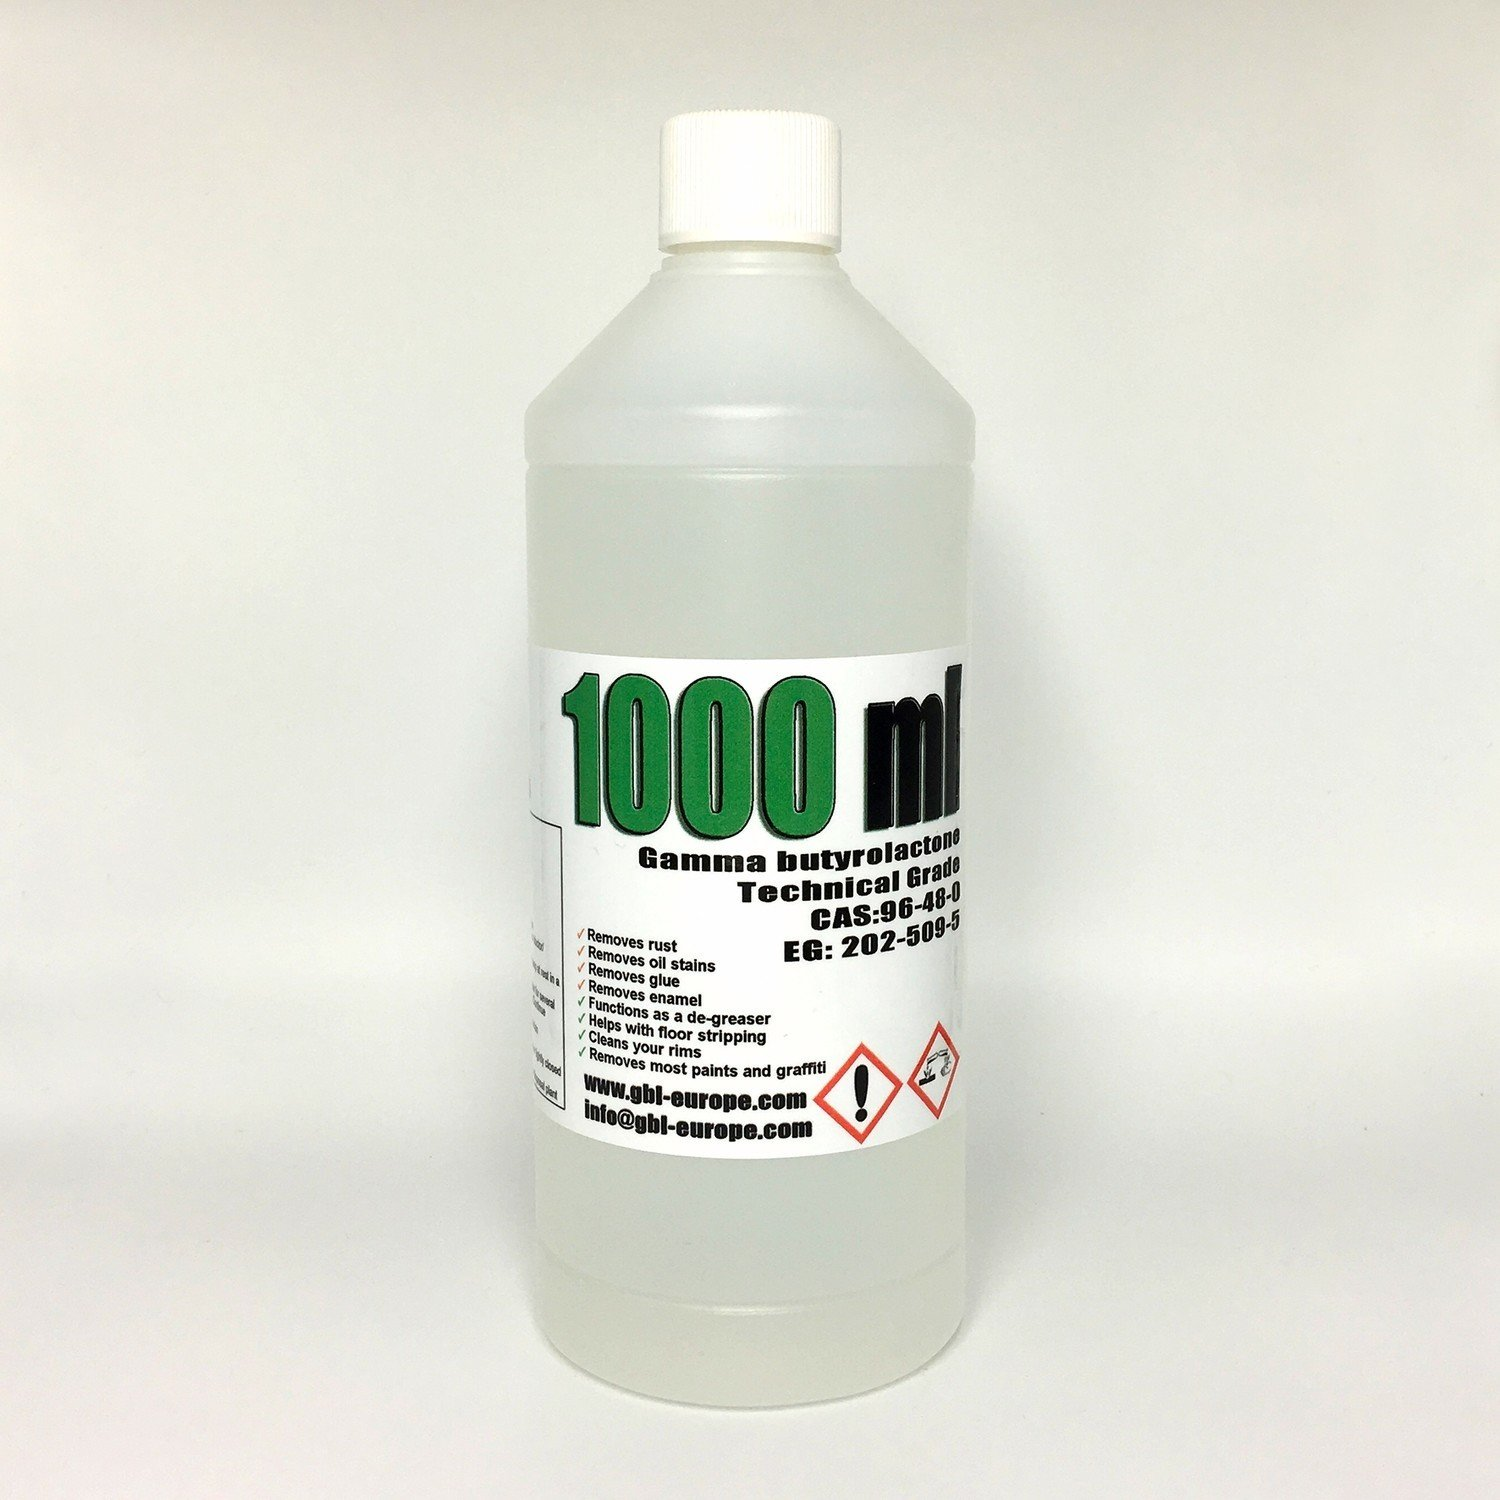 Multi Remover 1.000 ml Technical Grade manufactured in India